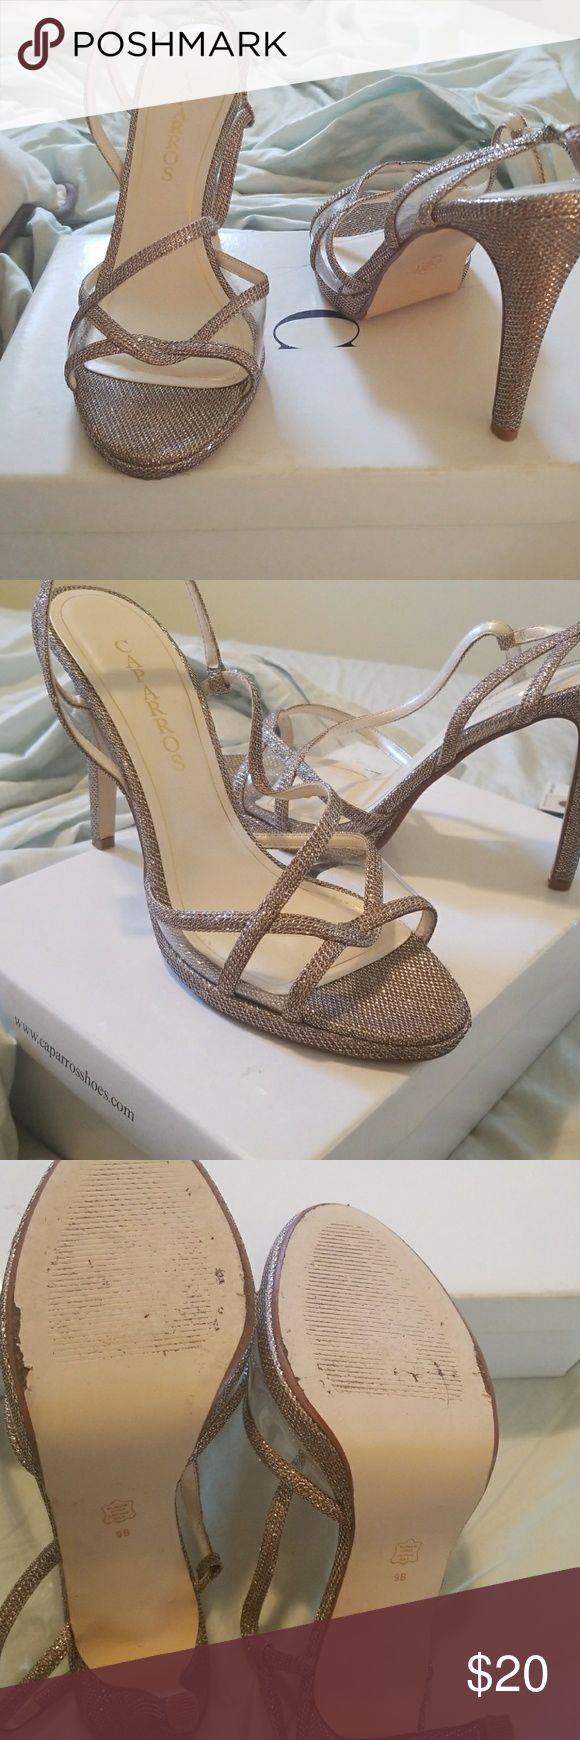 """Lightly worn Caparros Gillian Gold Heels Size 9 Caparros Gilliam heels in """"Champange Sparkle"""". Heel height is 3.75 inches. Caparros Shoes Heels"""